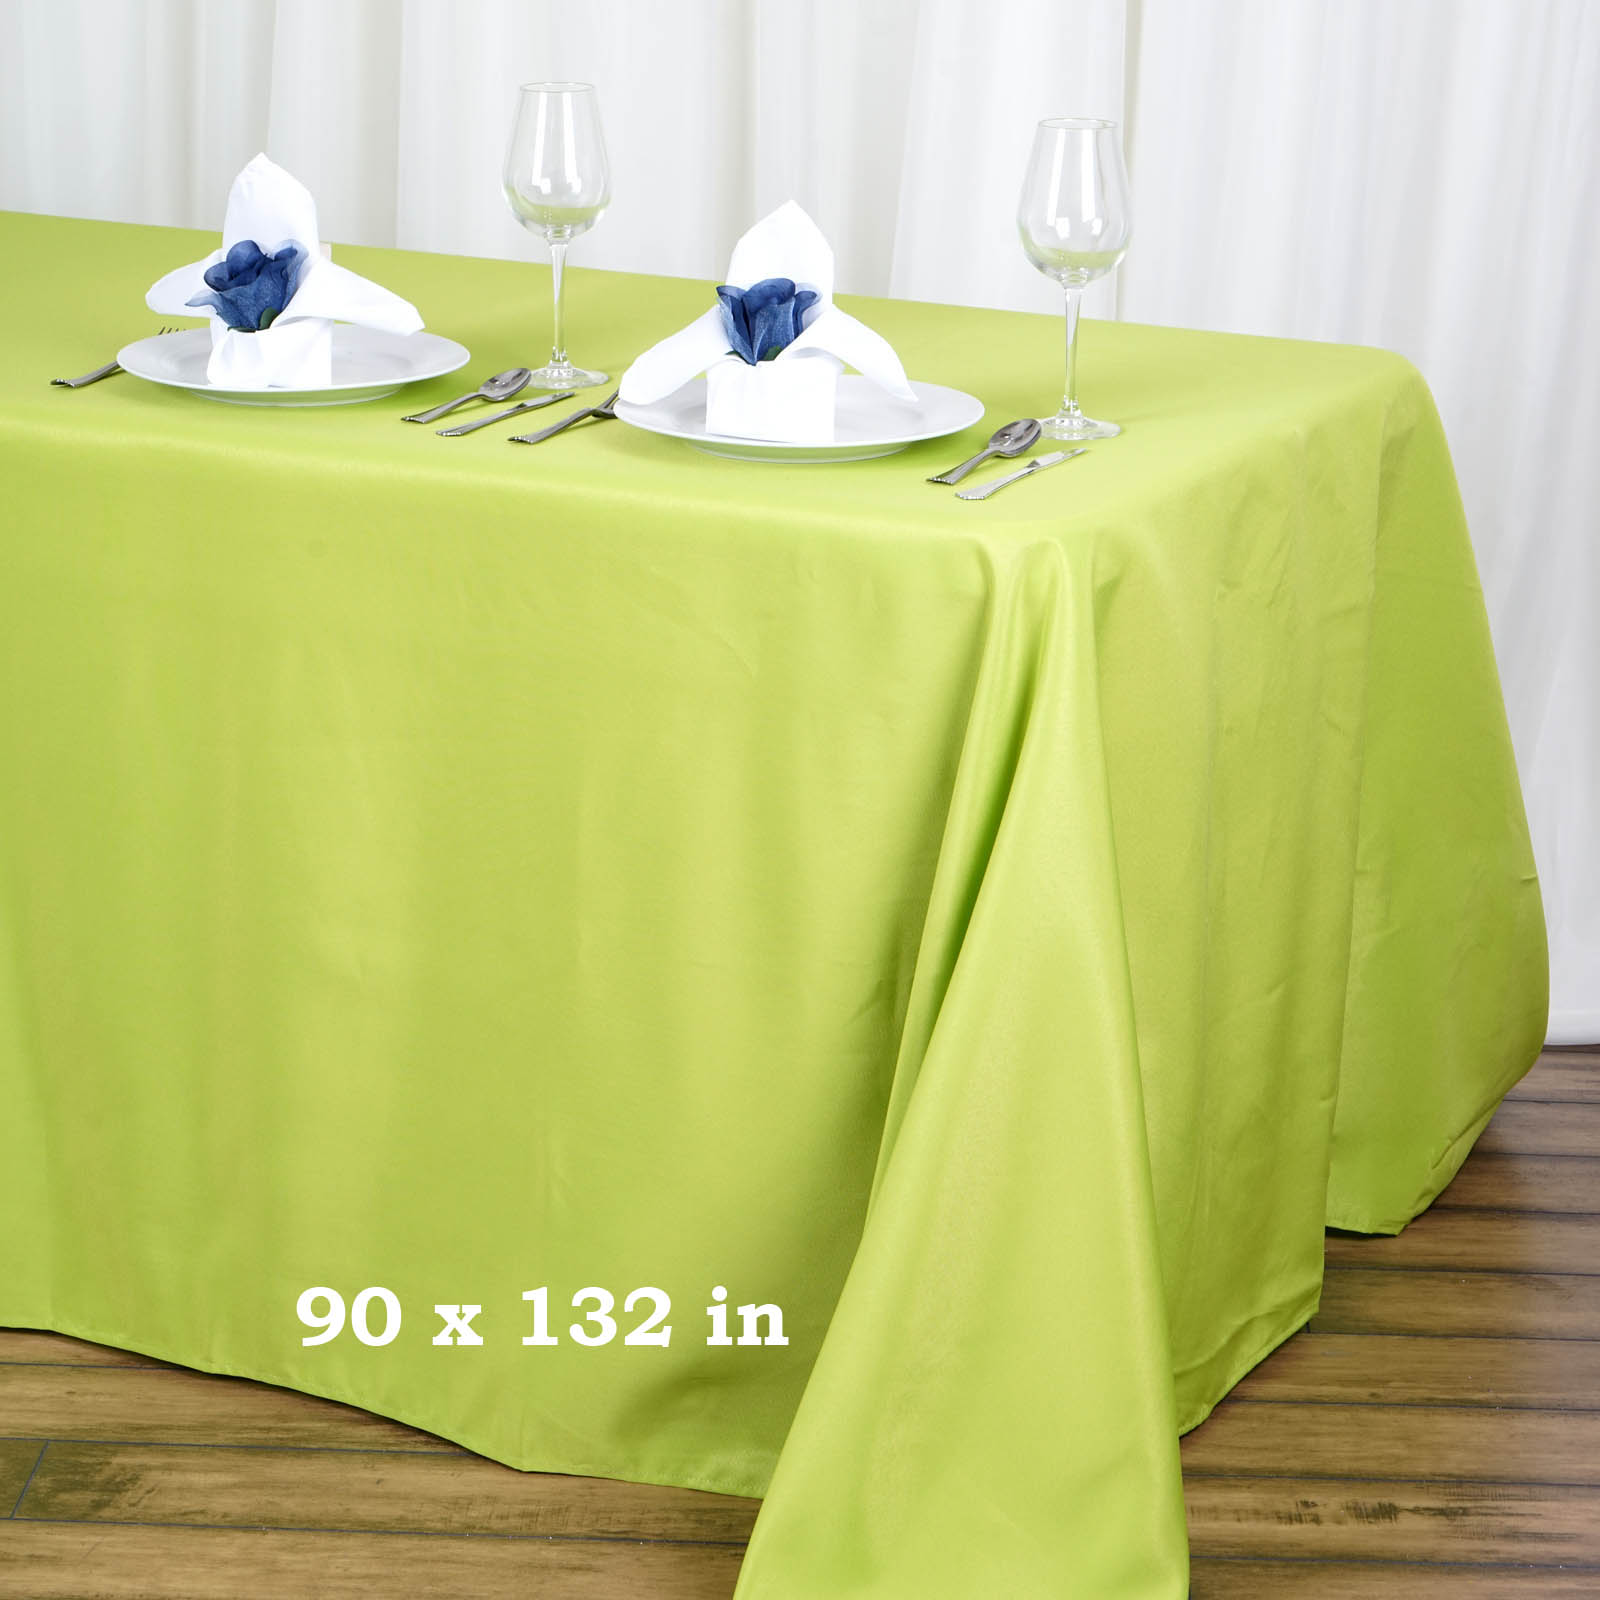 "BalsaCircle 90"" x 132"" Rectangular Polyester Tablecloth for Party Wedding Reception Catering Dining Home Table Linens"